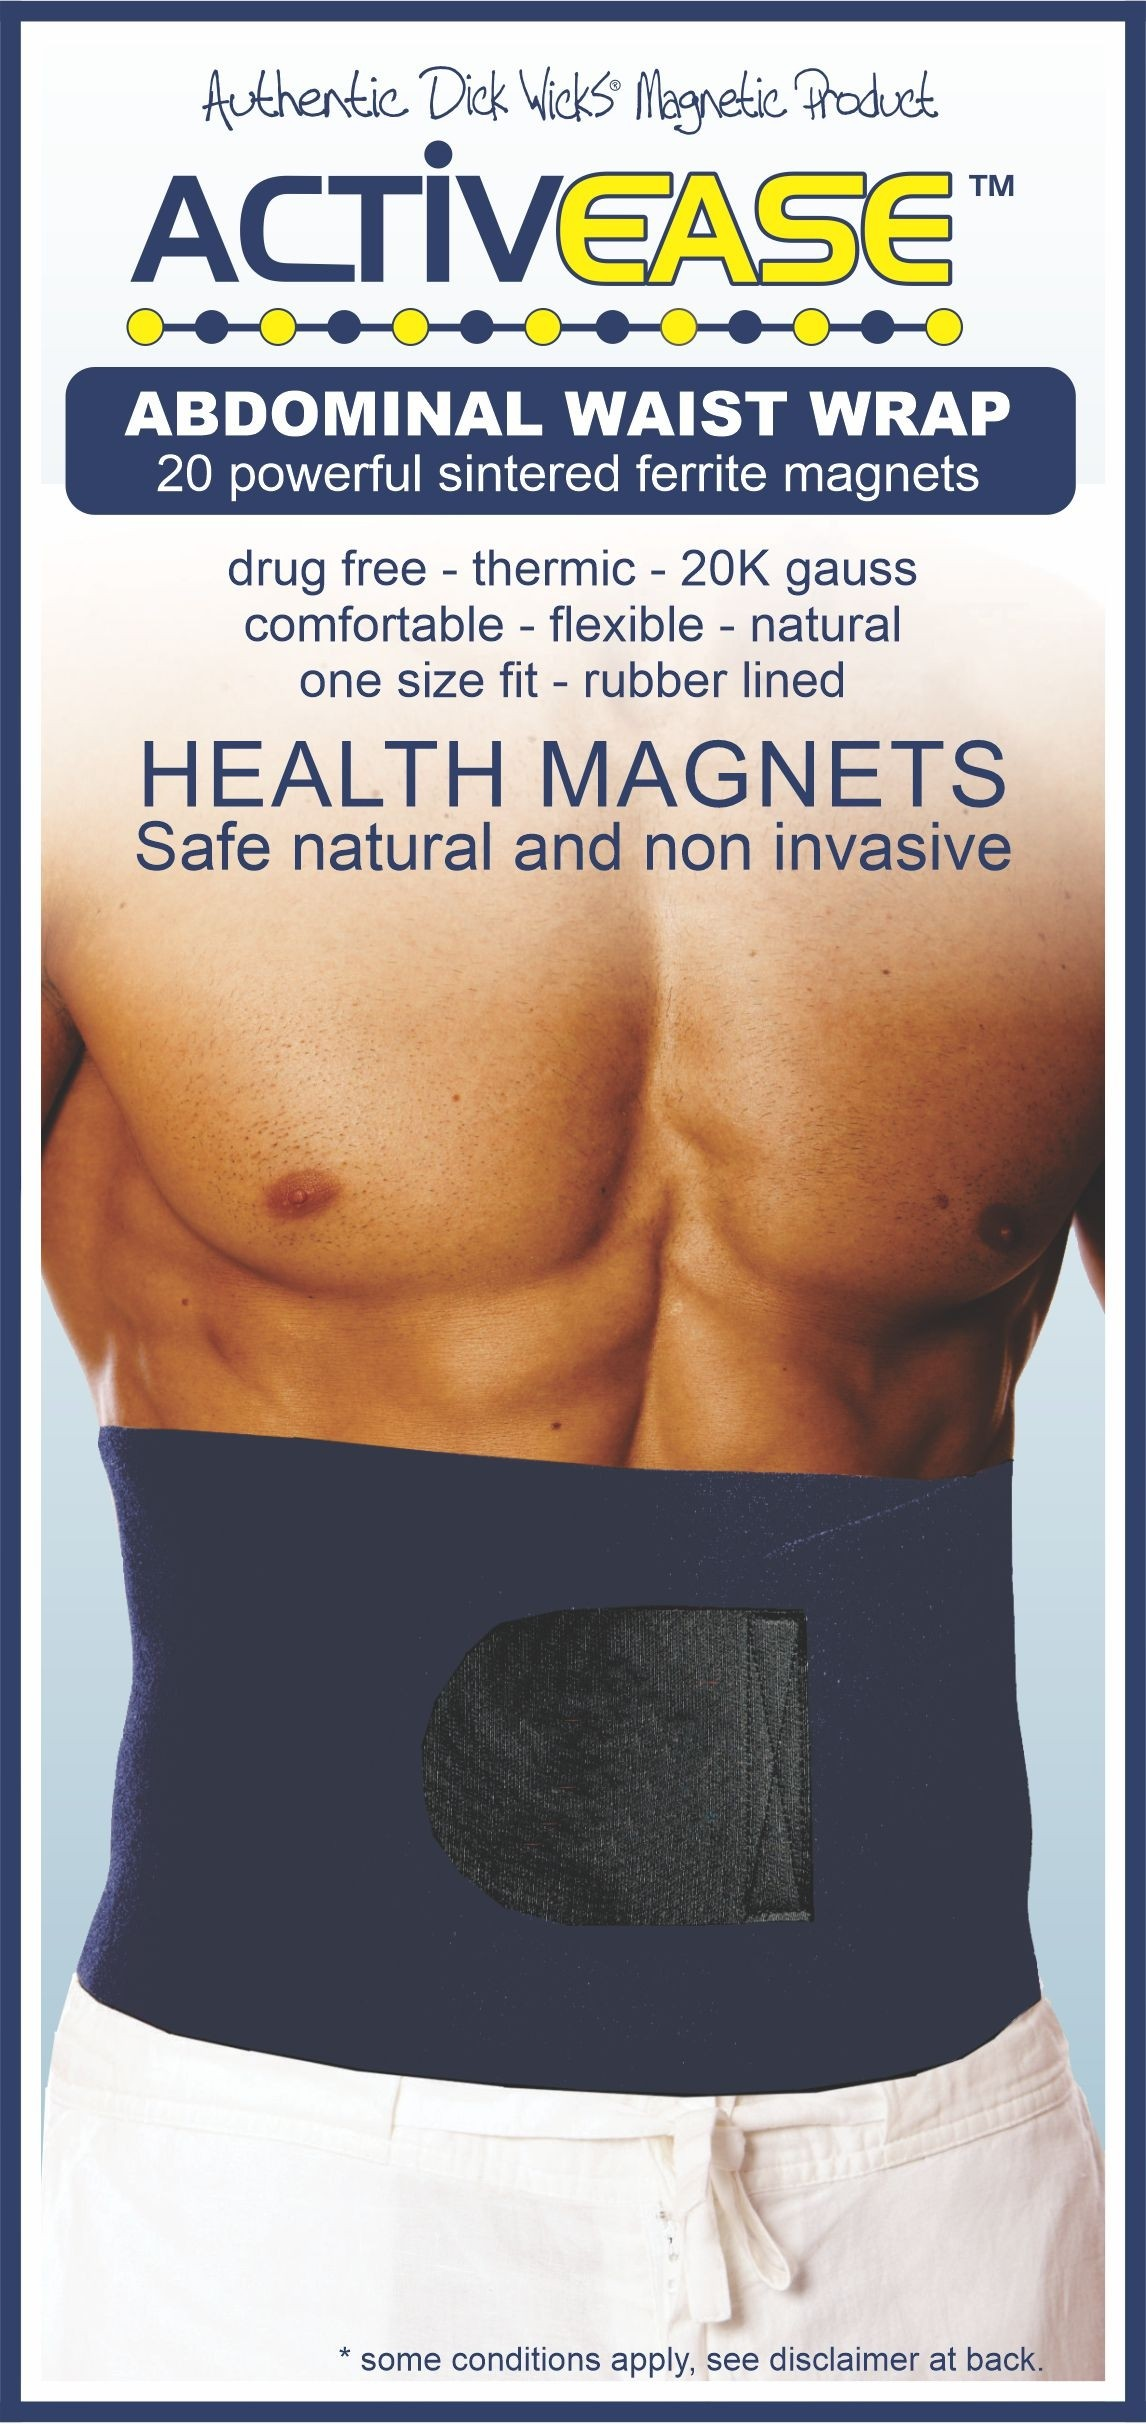 Activease Thermal Waist Wrap with Magnets by Dick Wicks